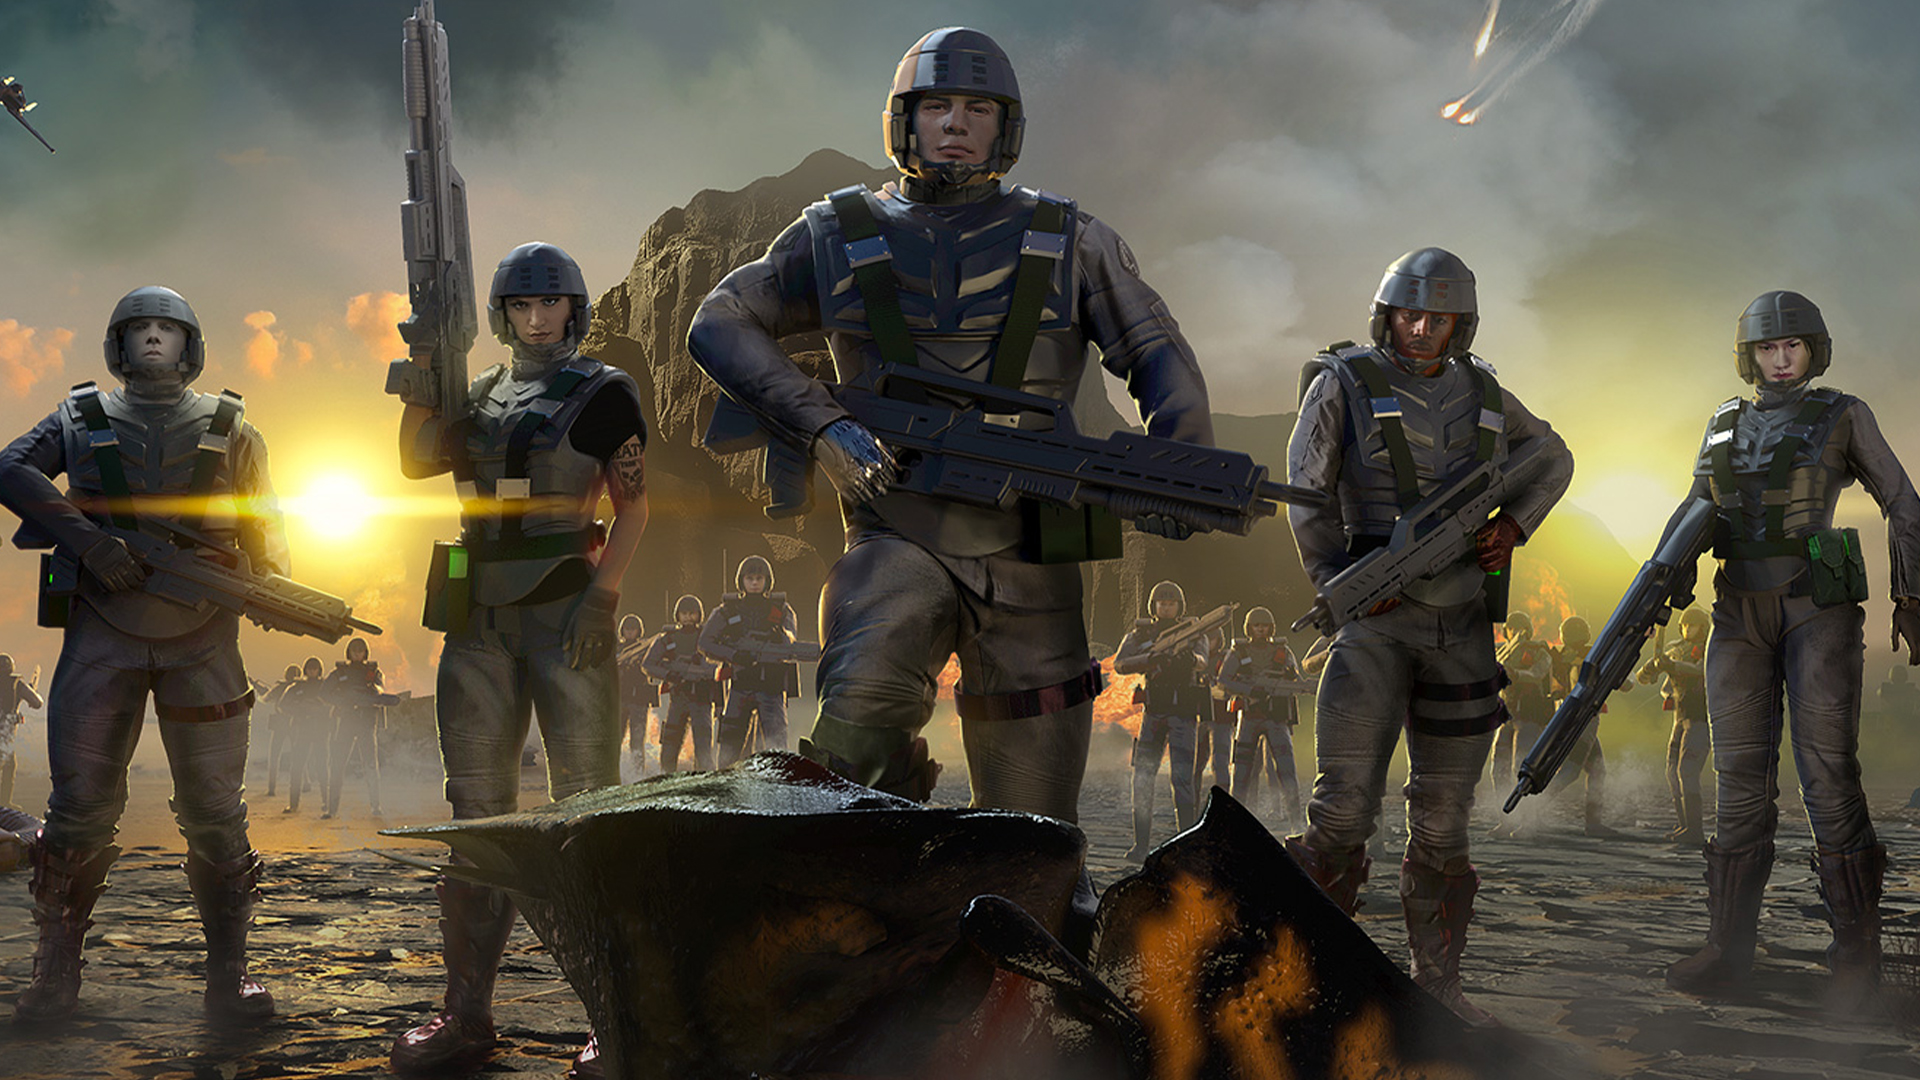 Best Rts 2020.Starship Troopers Gets A Survival Rts In 2020 Pcgamesn